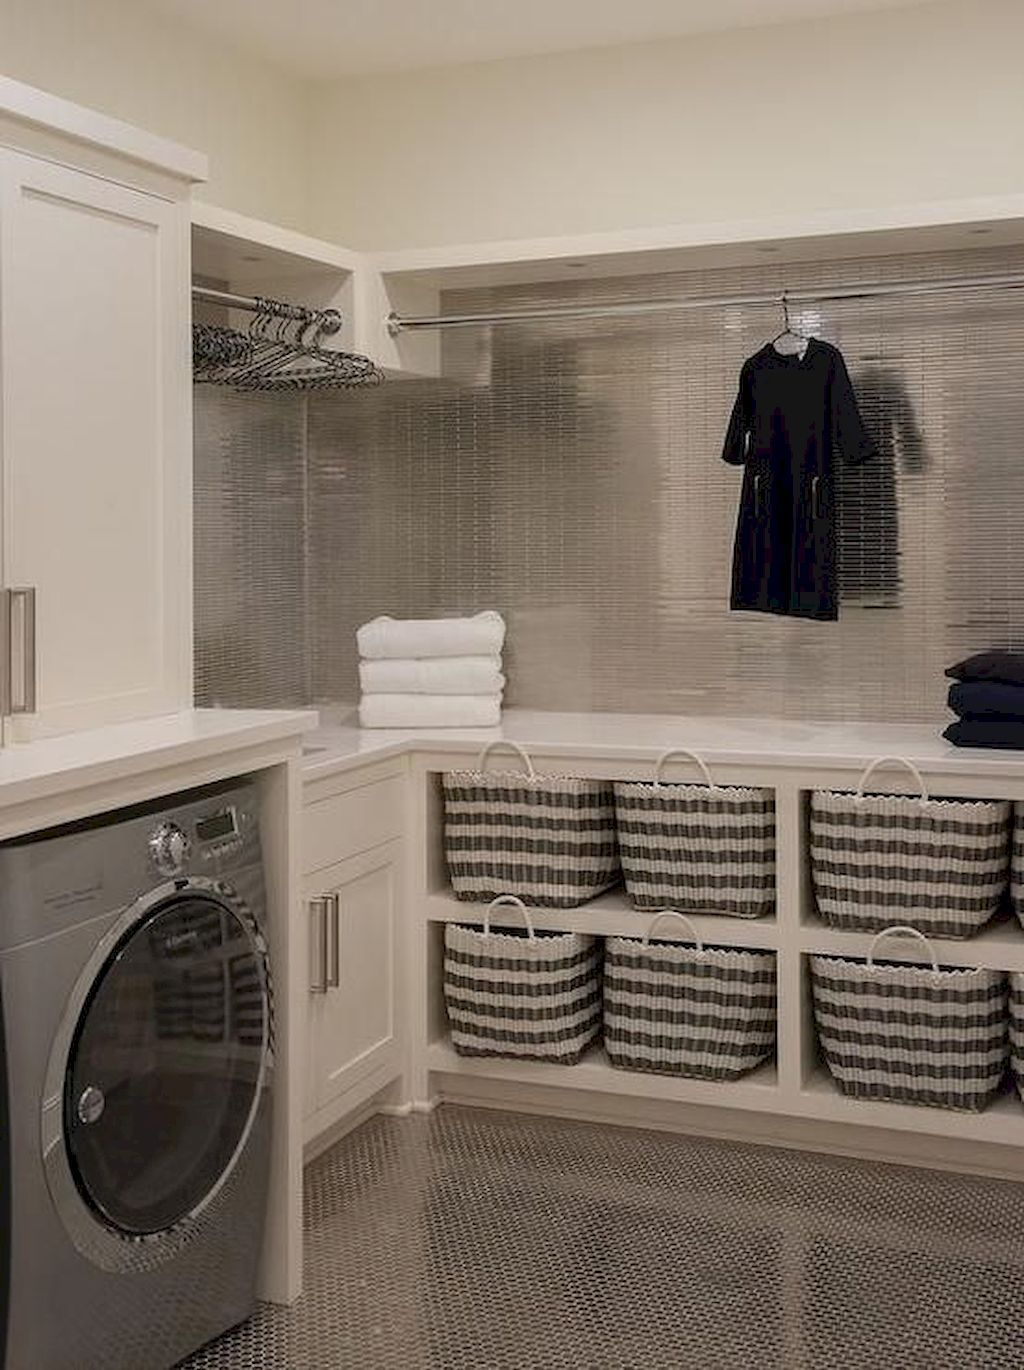 Cool 90 Simple And Clean Modern Laundry Room That Fit Into Contemporary Homes Https Livinking Laundry Room Layouts Laundry Room Remodel Basement Laundry Room